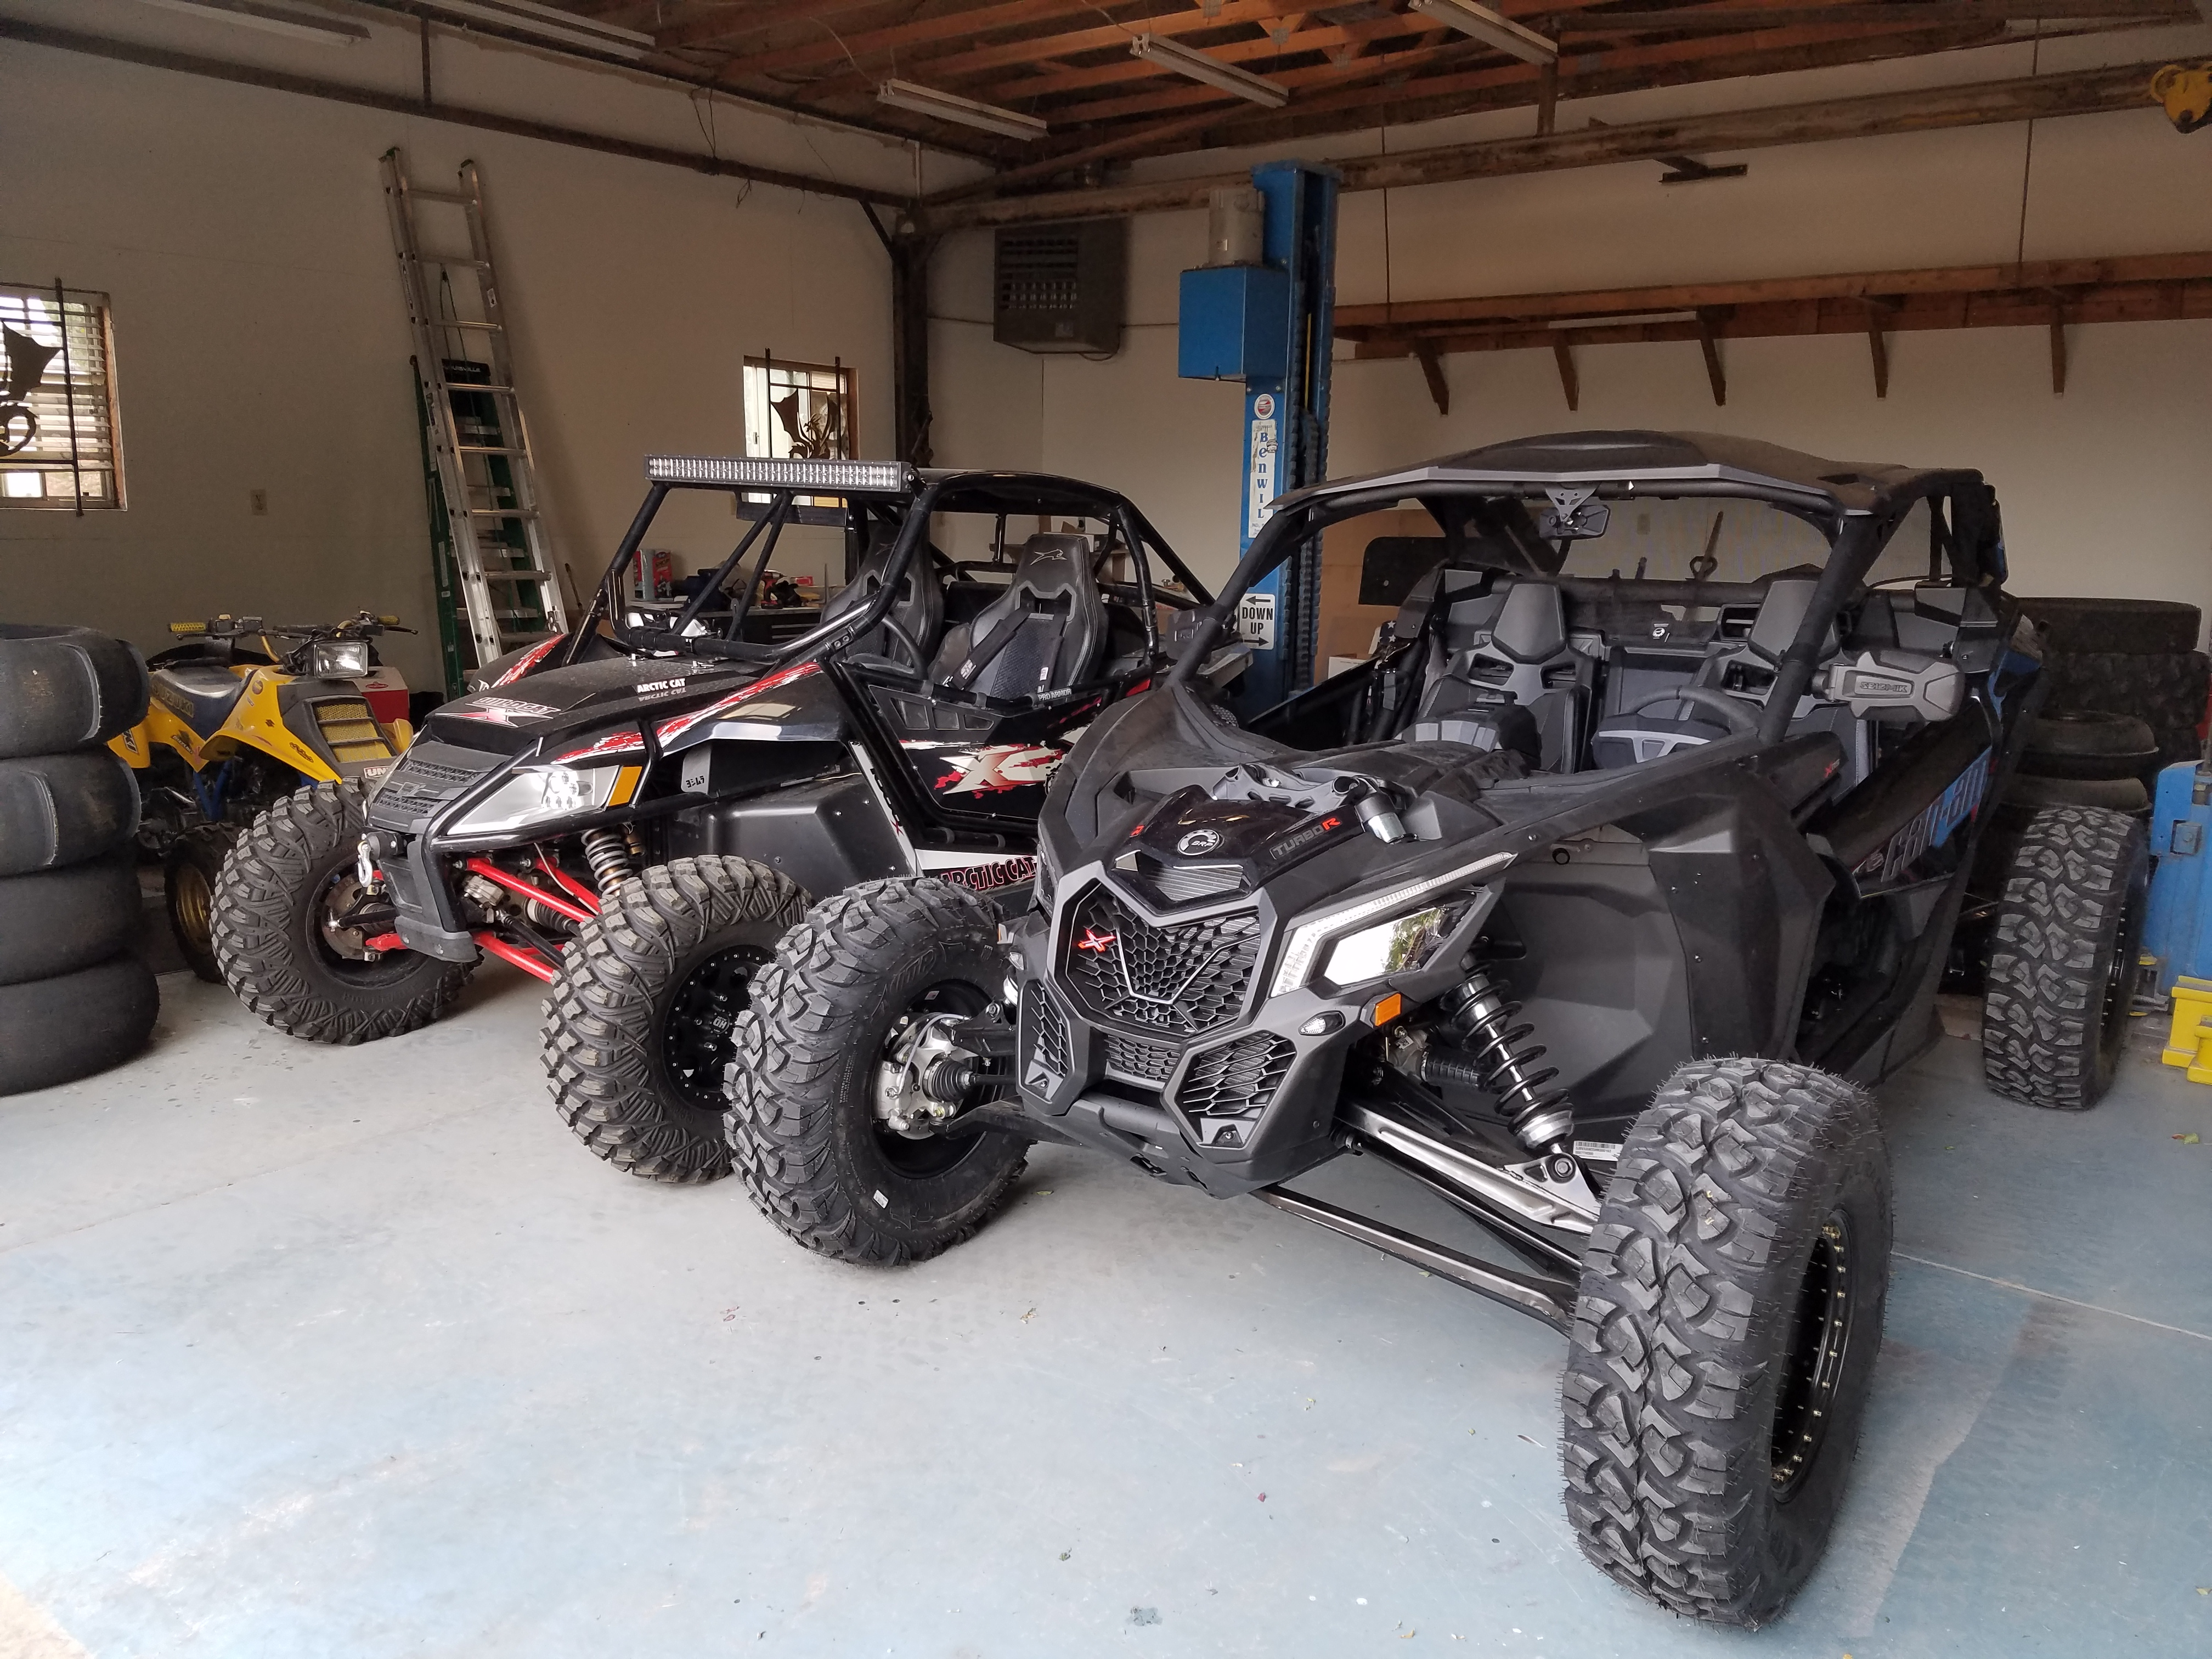 Pics and differences between my wildcat x and canam x3